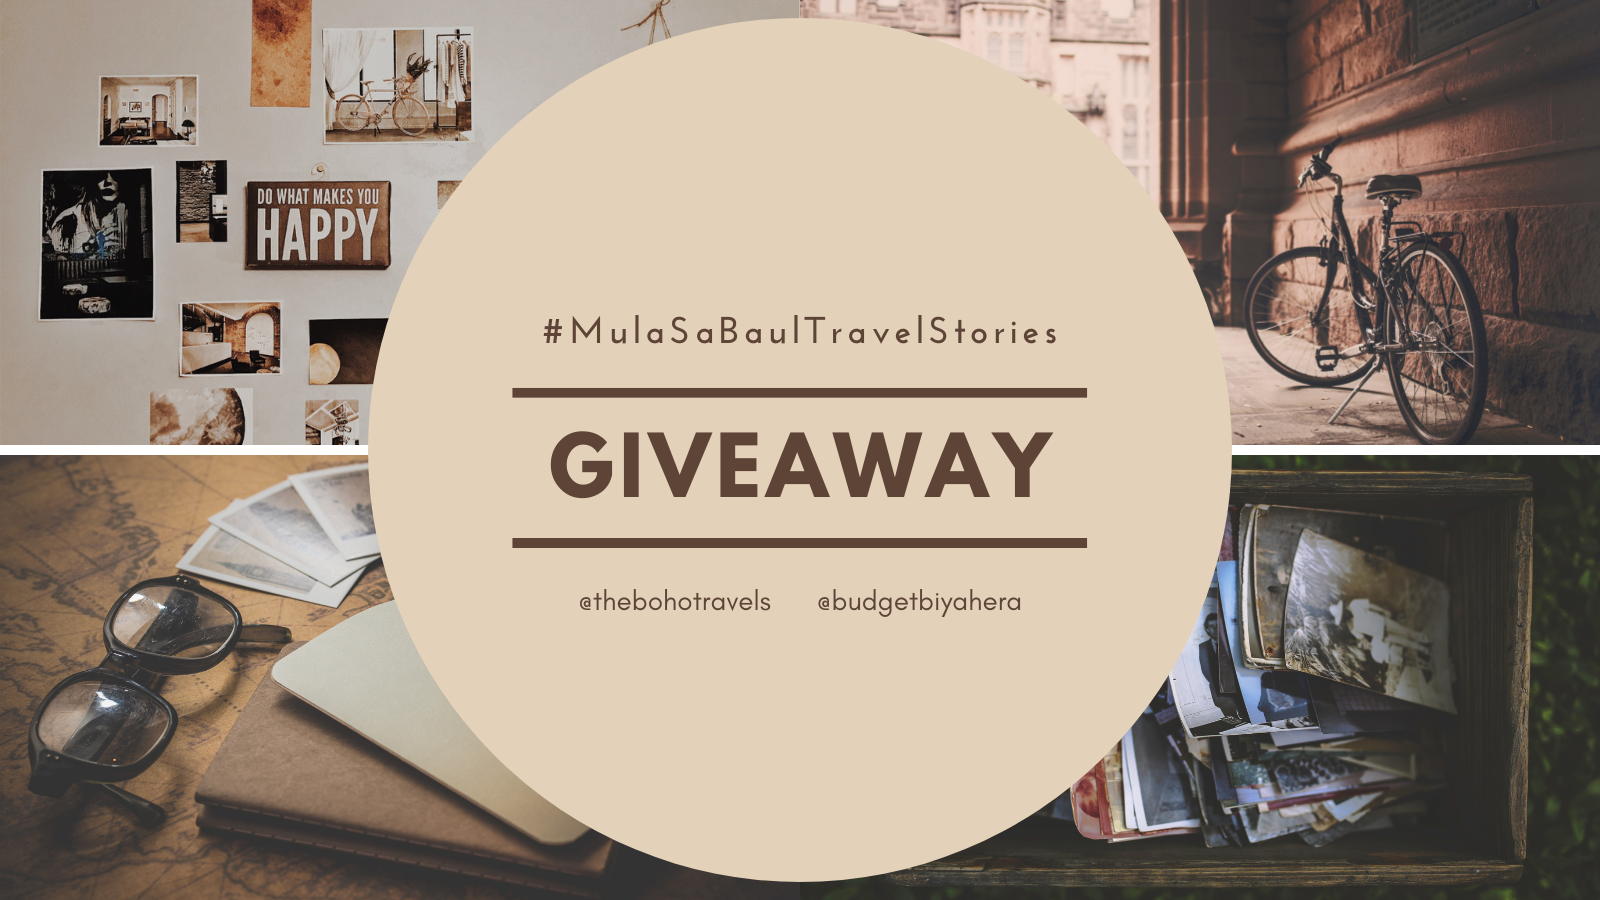 Mula Sa Baul Travel Stories Instagram Giveaway Details